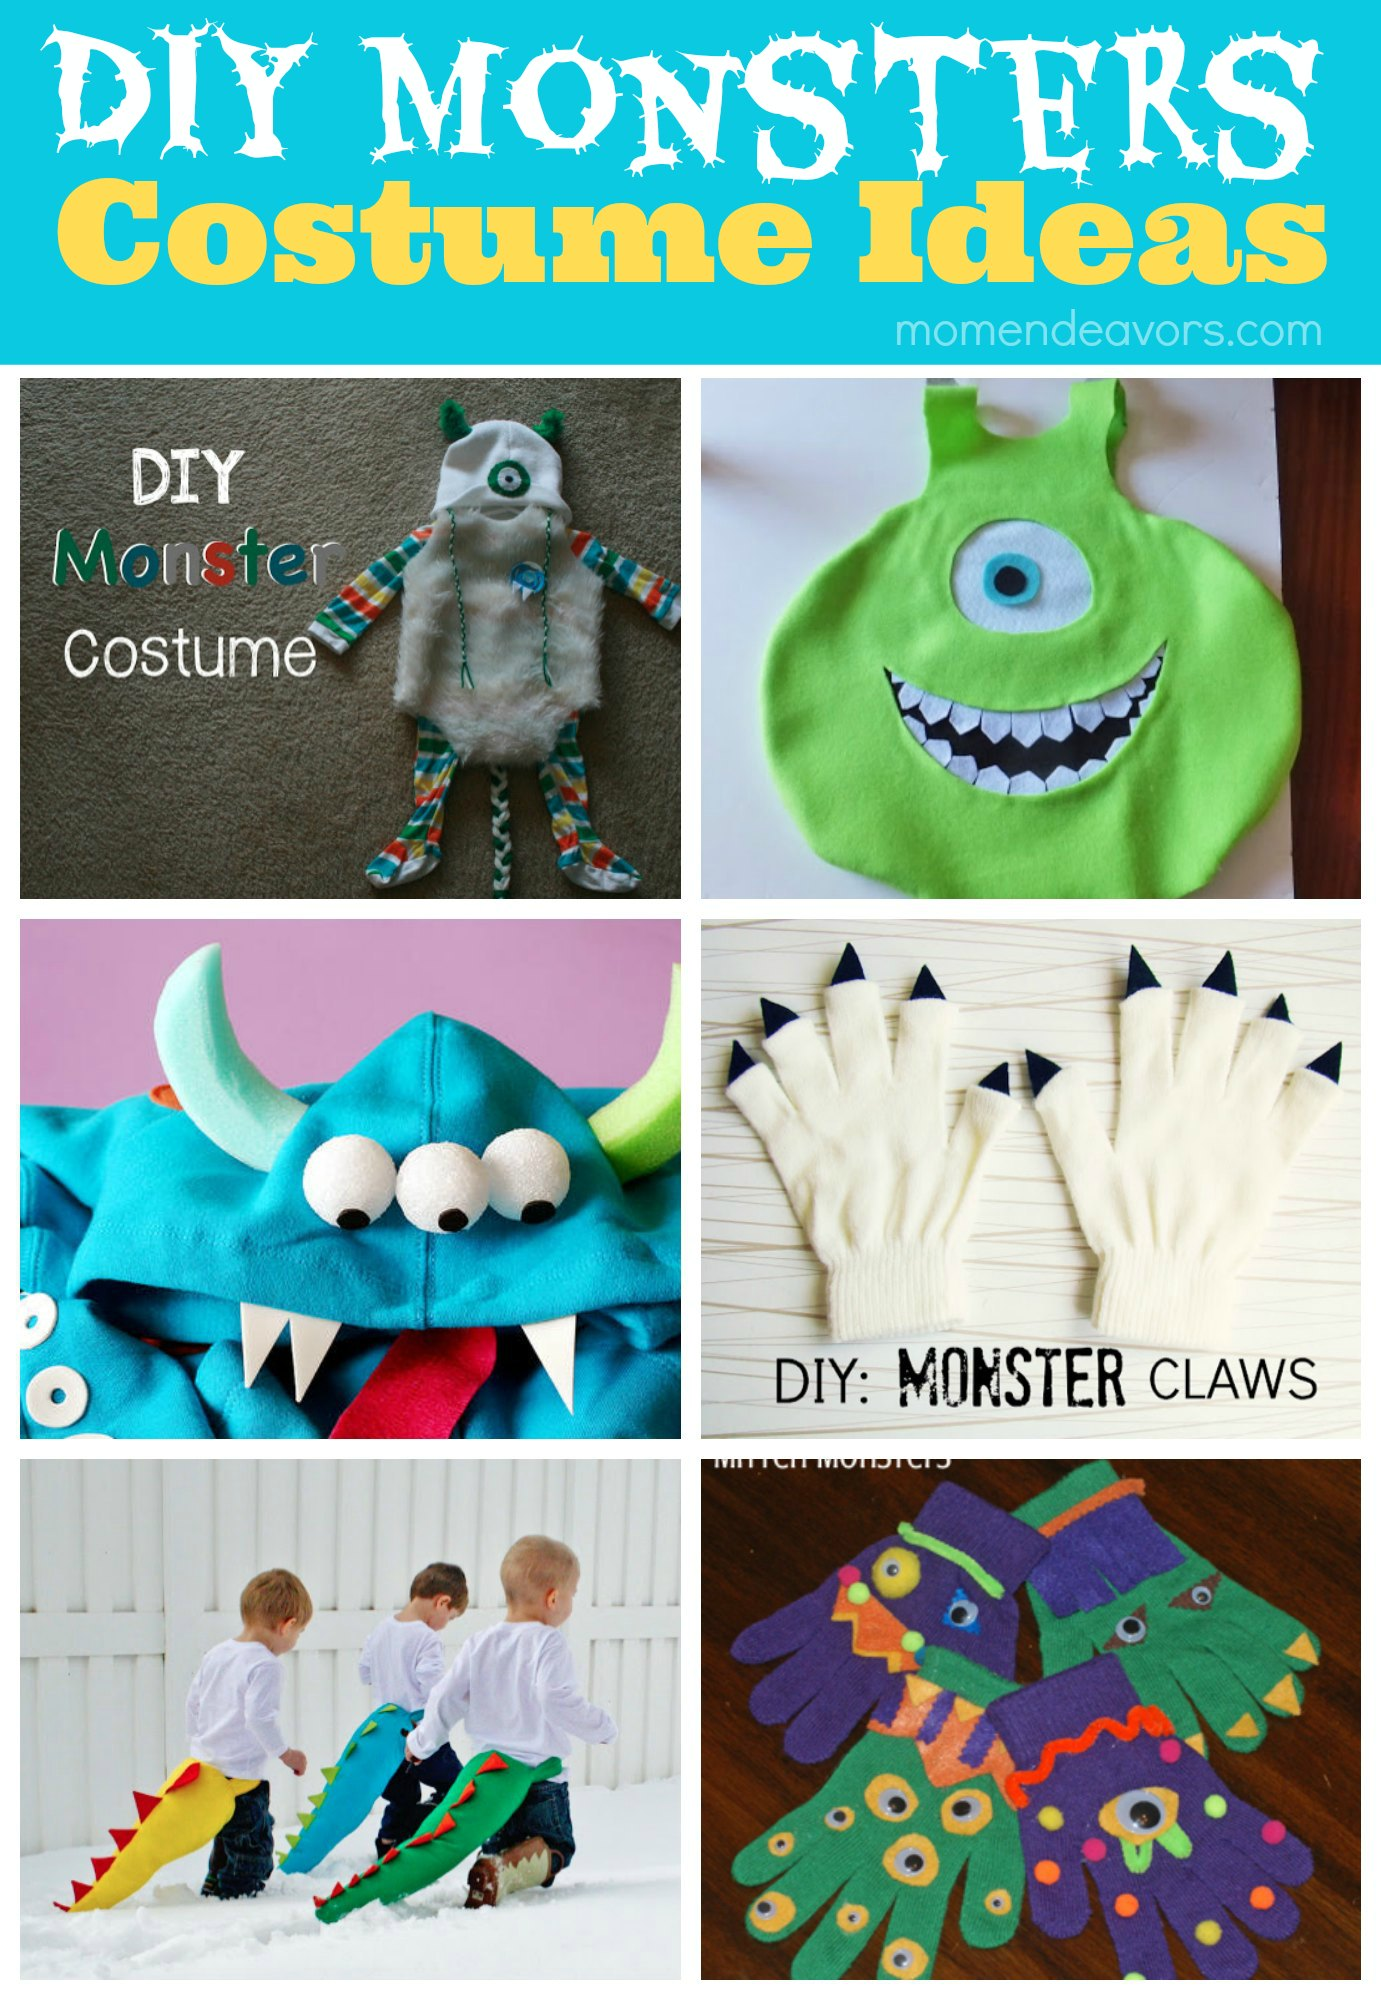 Crafts U Can Make For Your Mom